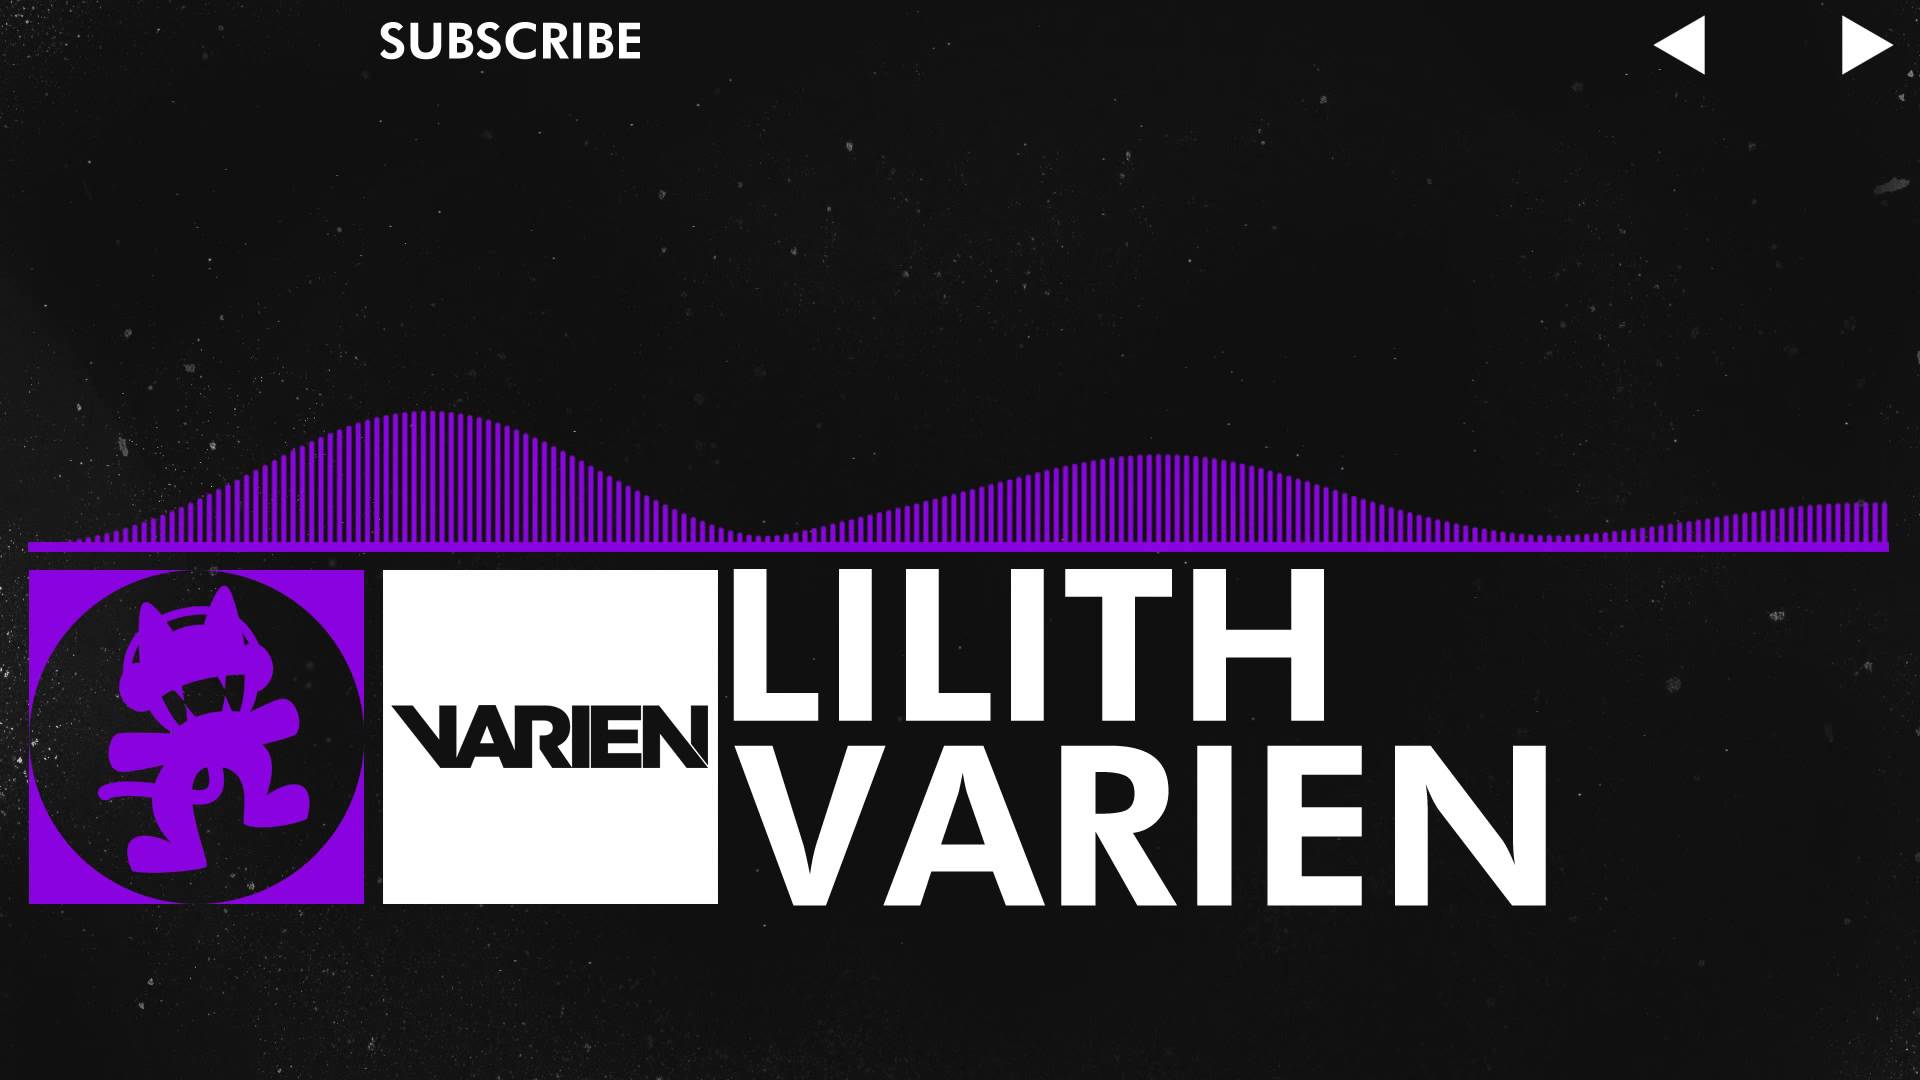 [Dubstep] - Varien - Lilith [Monstercat Release]